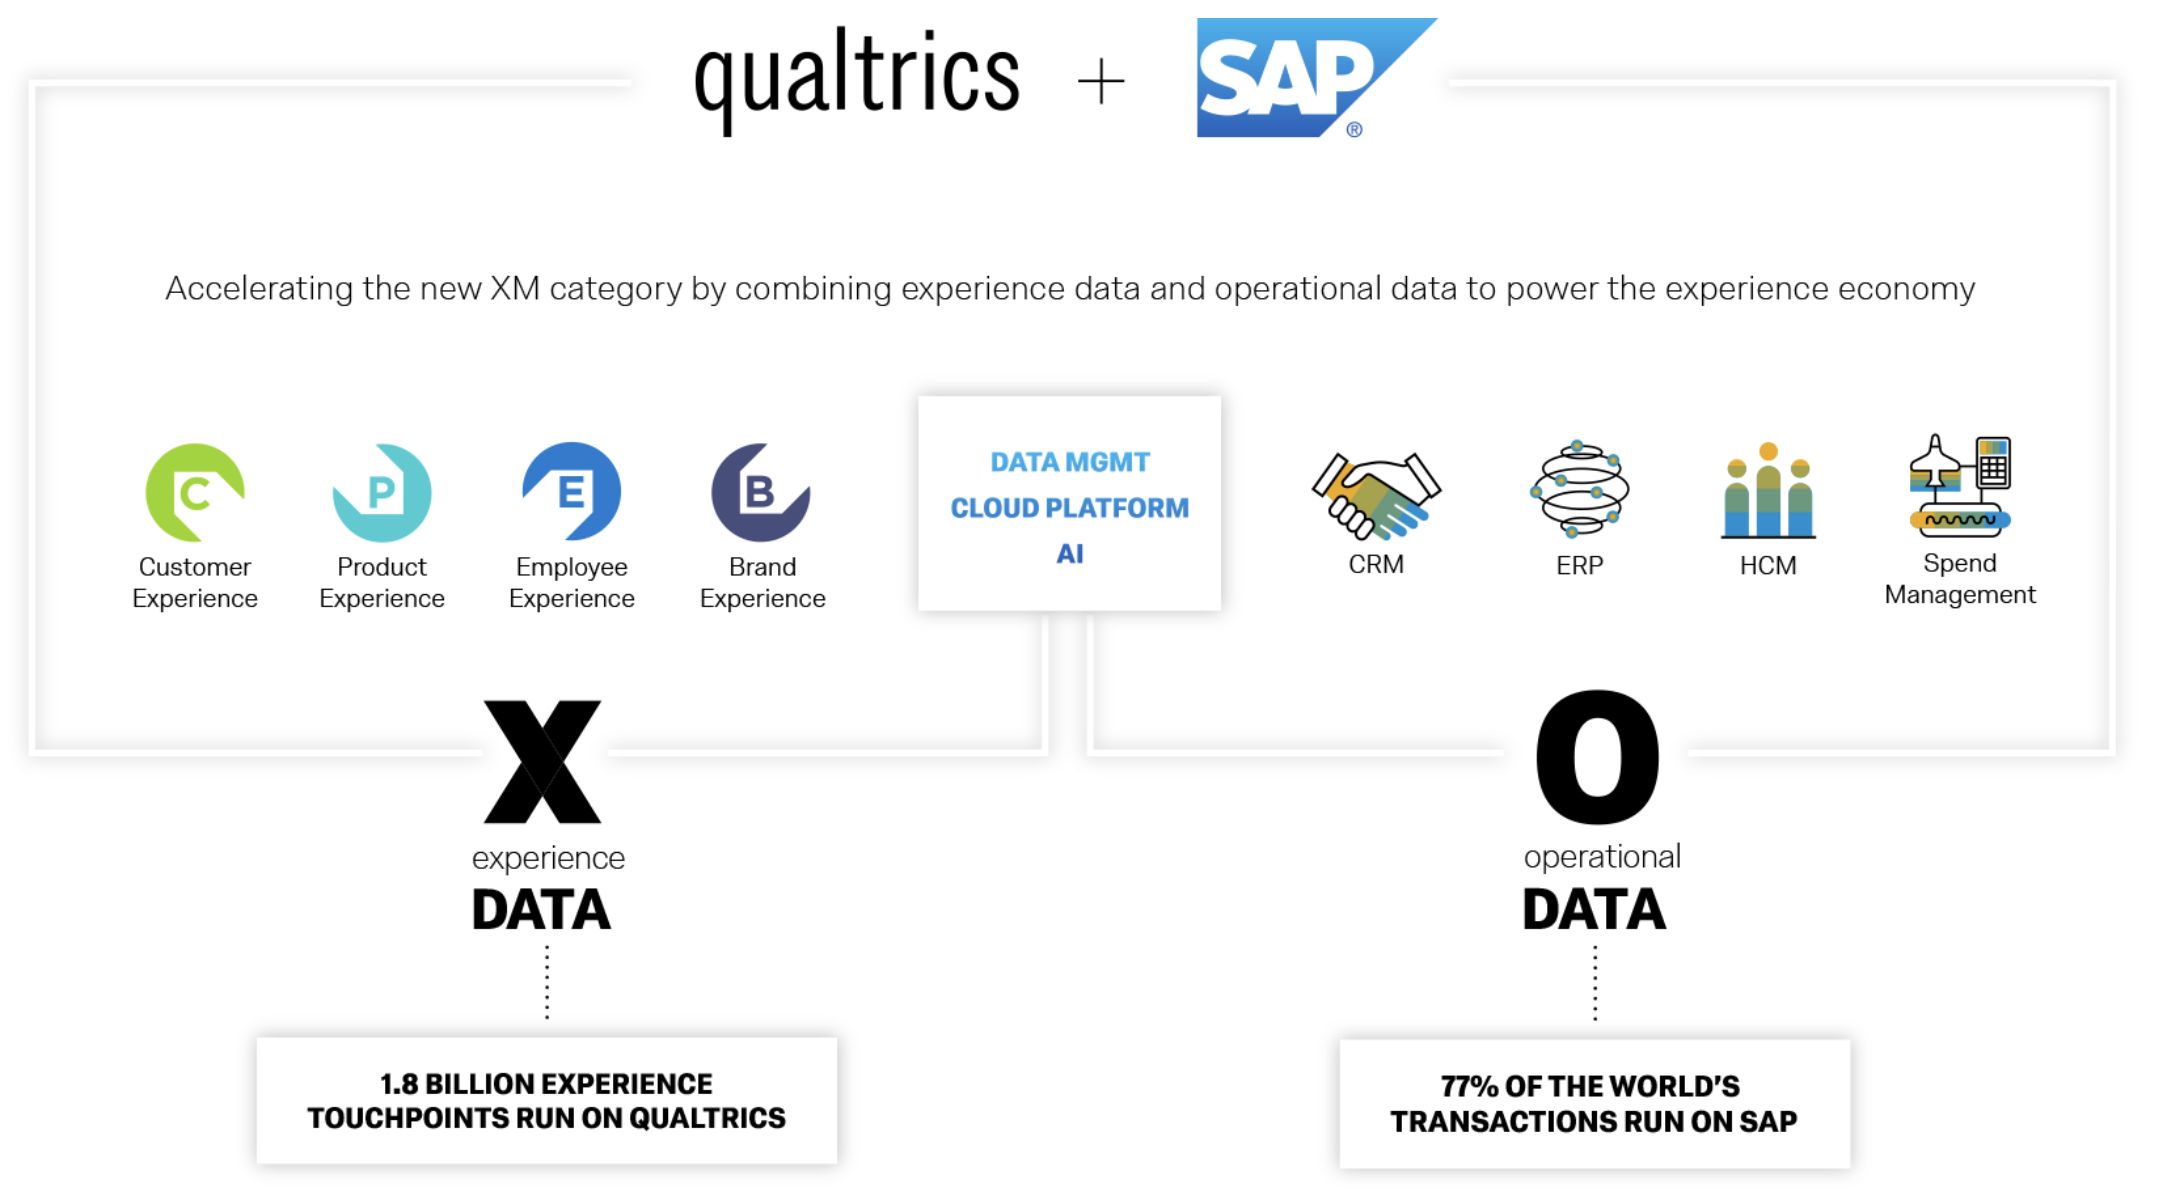 Qualtrics + SAP